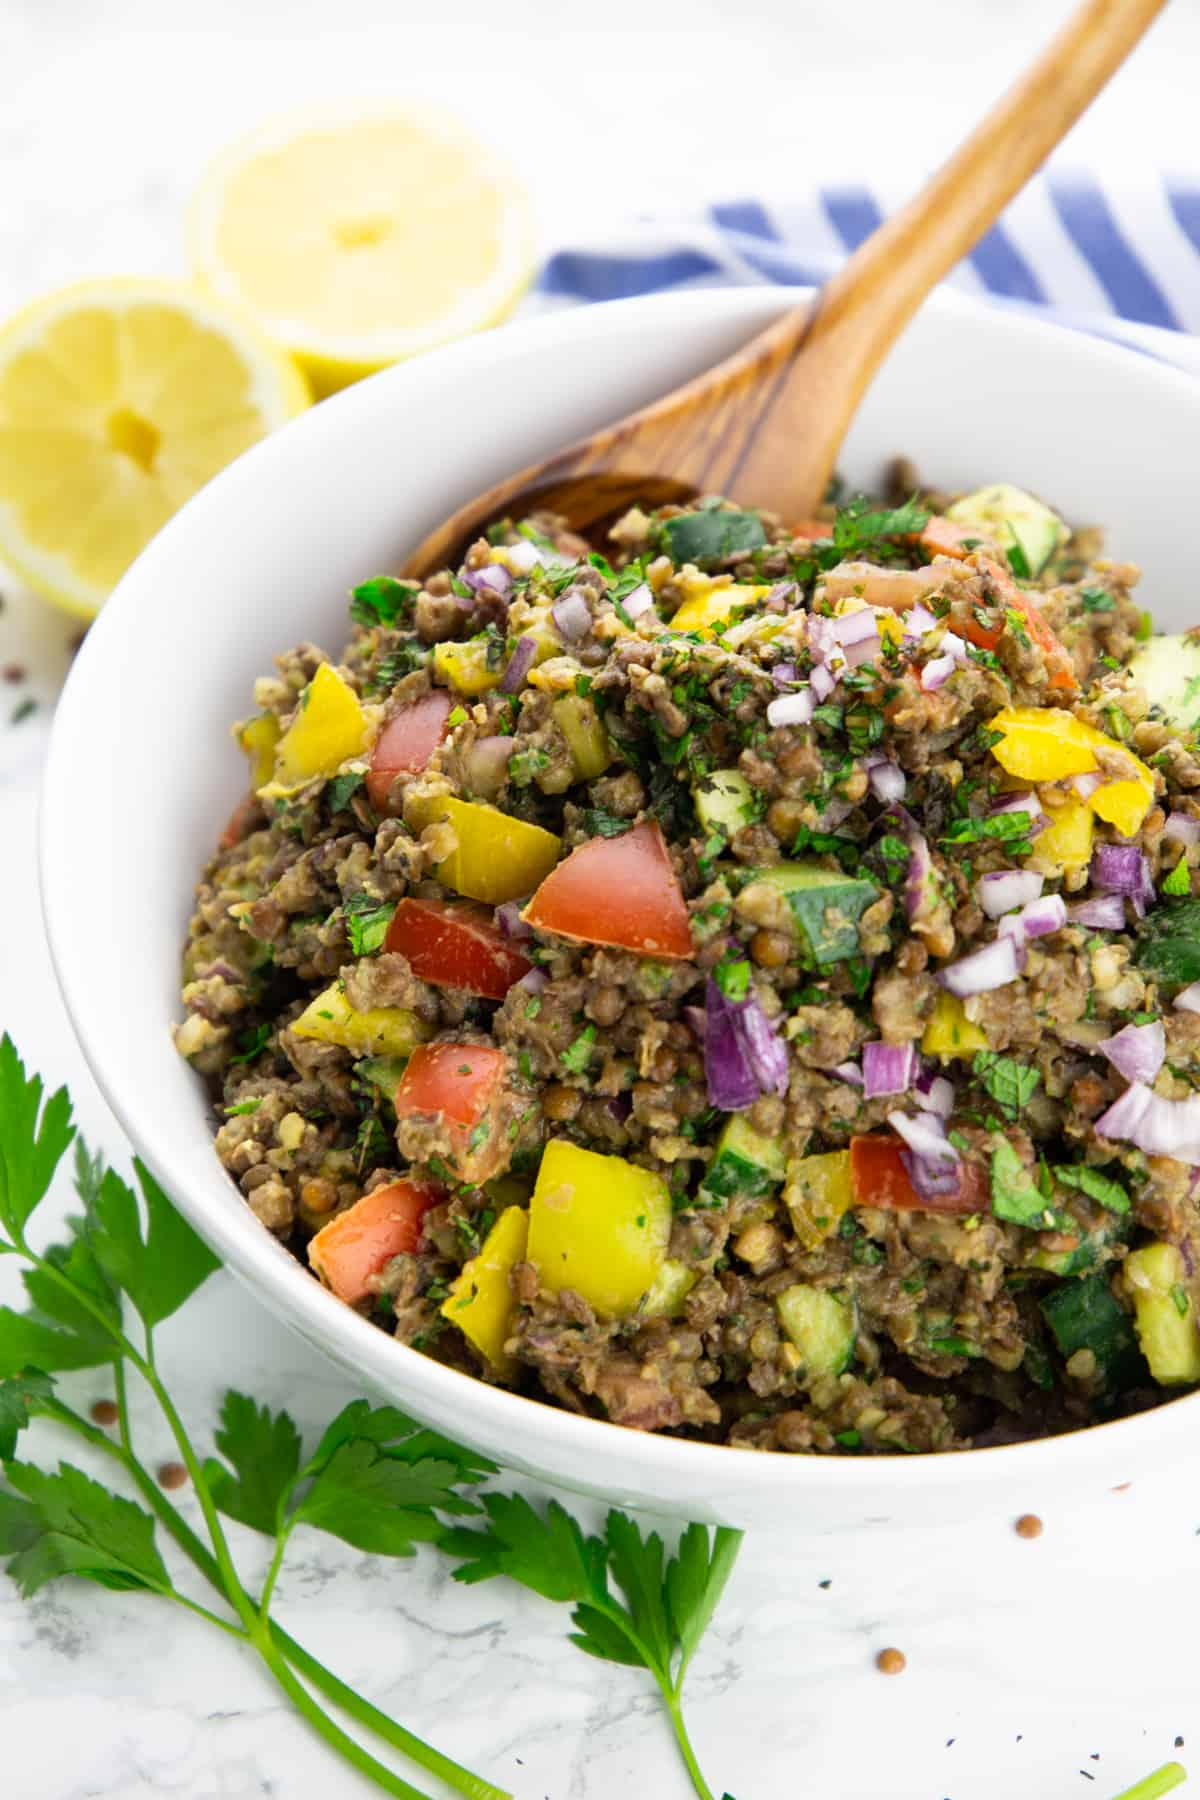 lentil salad with tomatoes, cucumber, and bell pepper in a white bowl with a wooden spoon